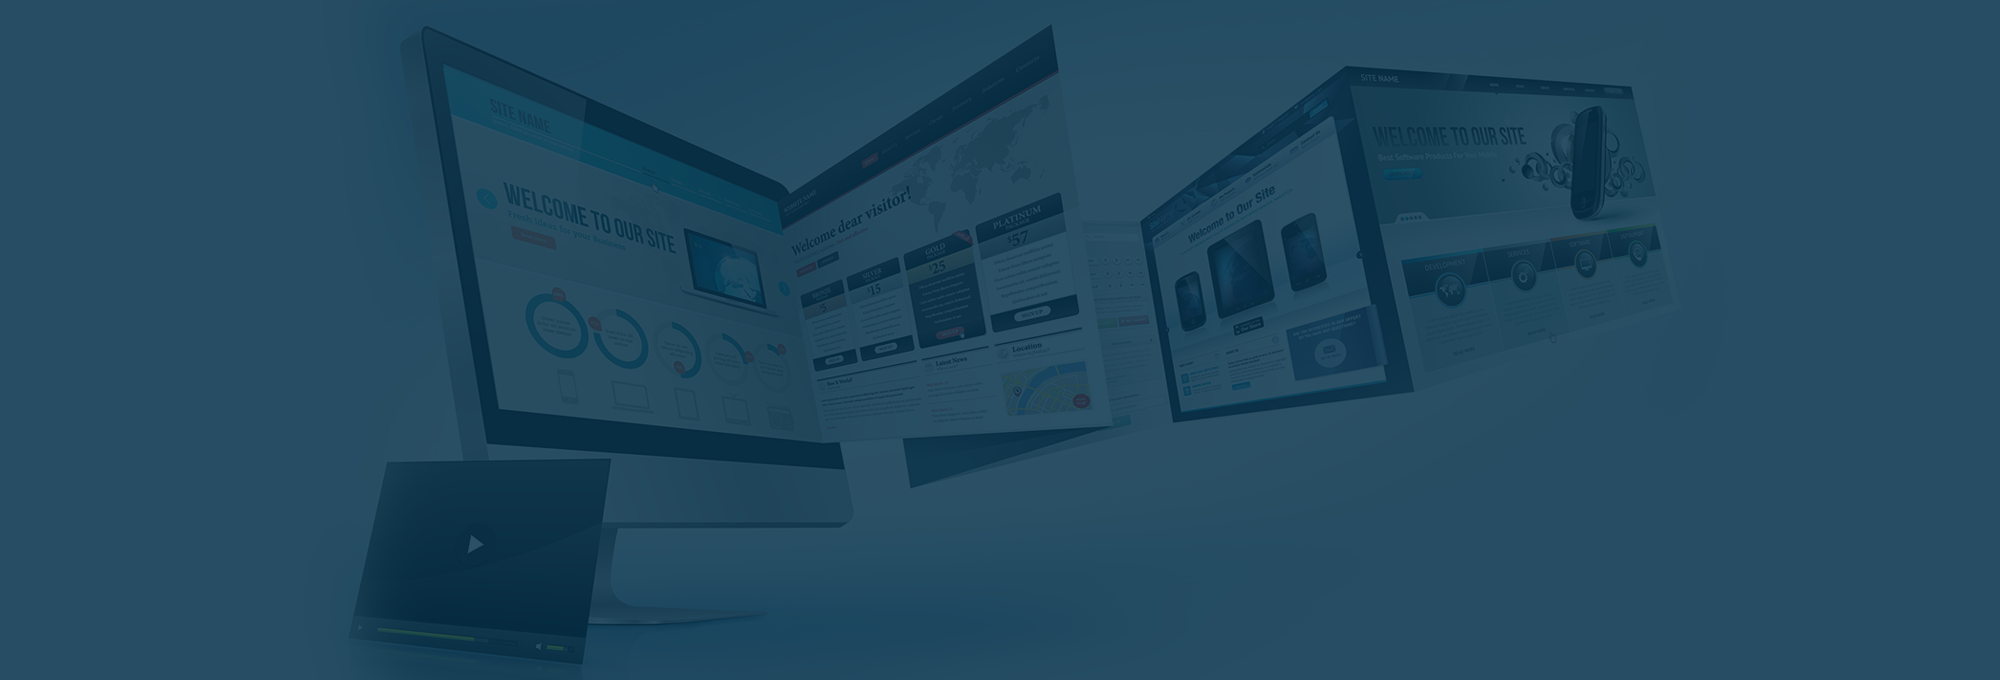 Websites Working for You: The Importance of Responsive Websites in an Ever Updating World